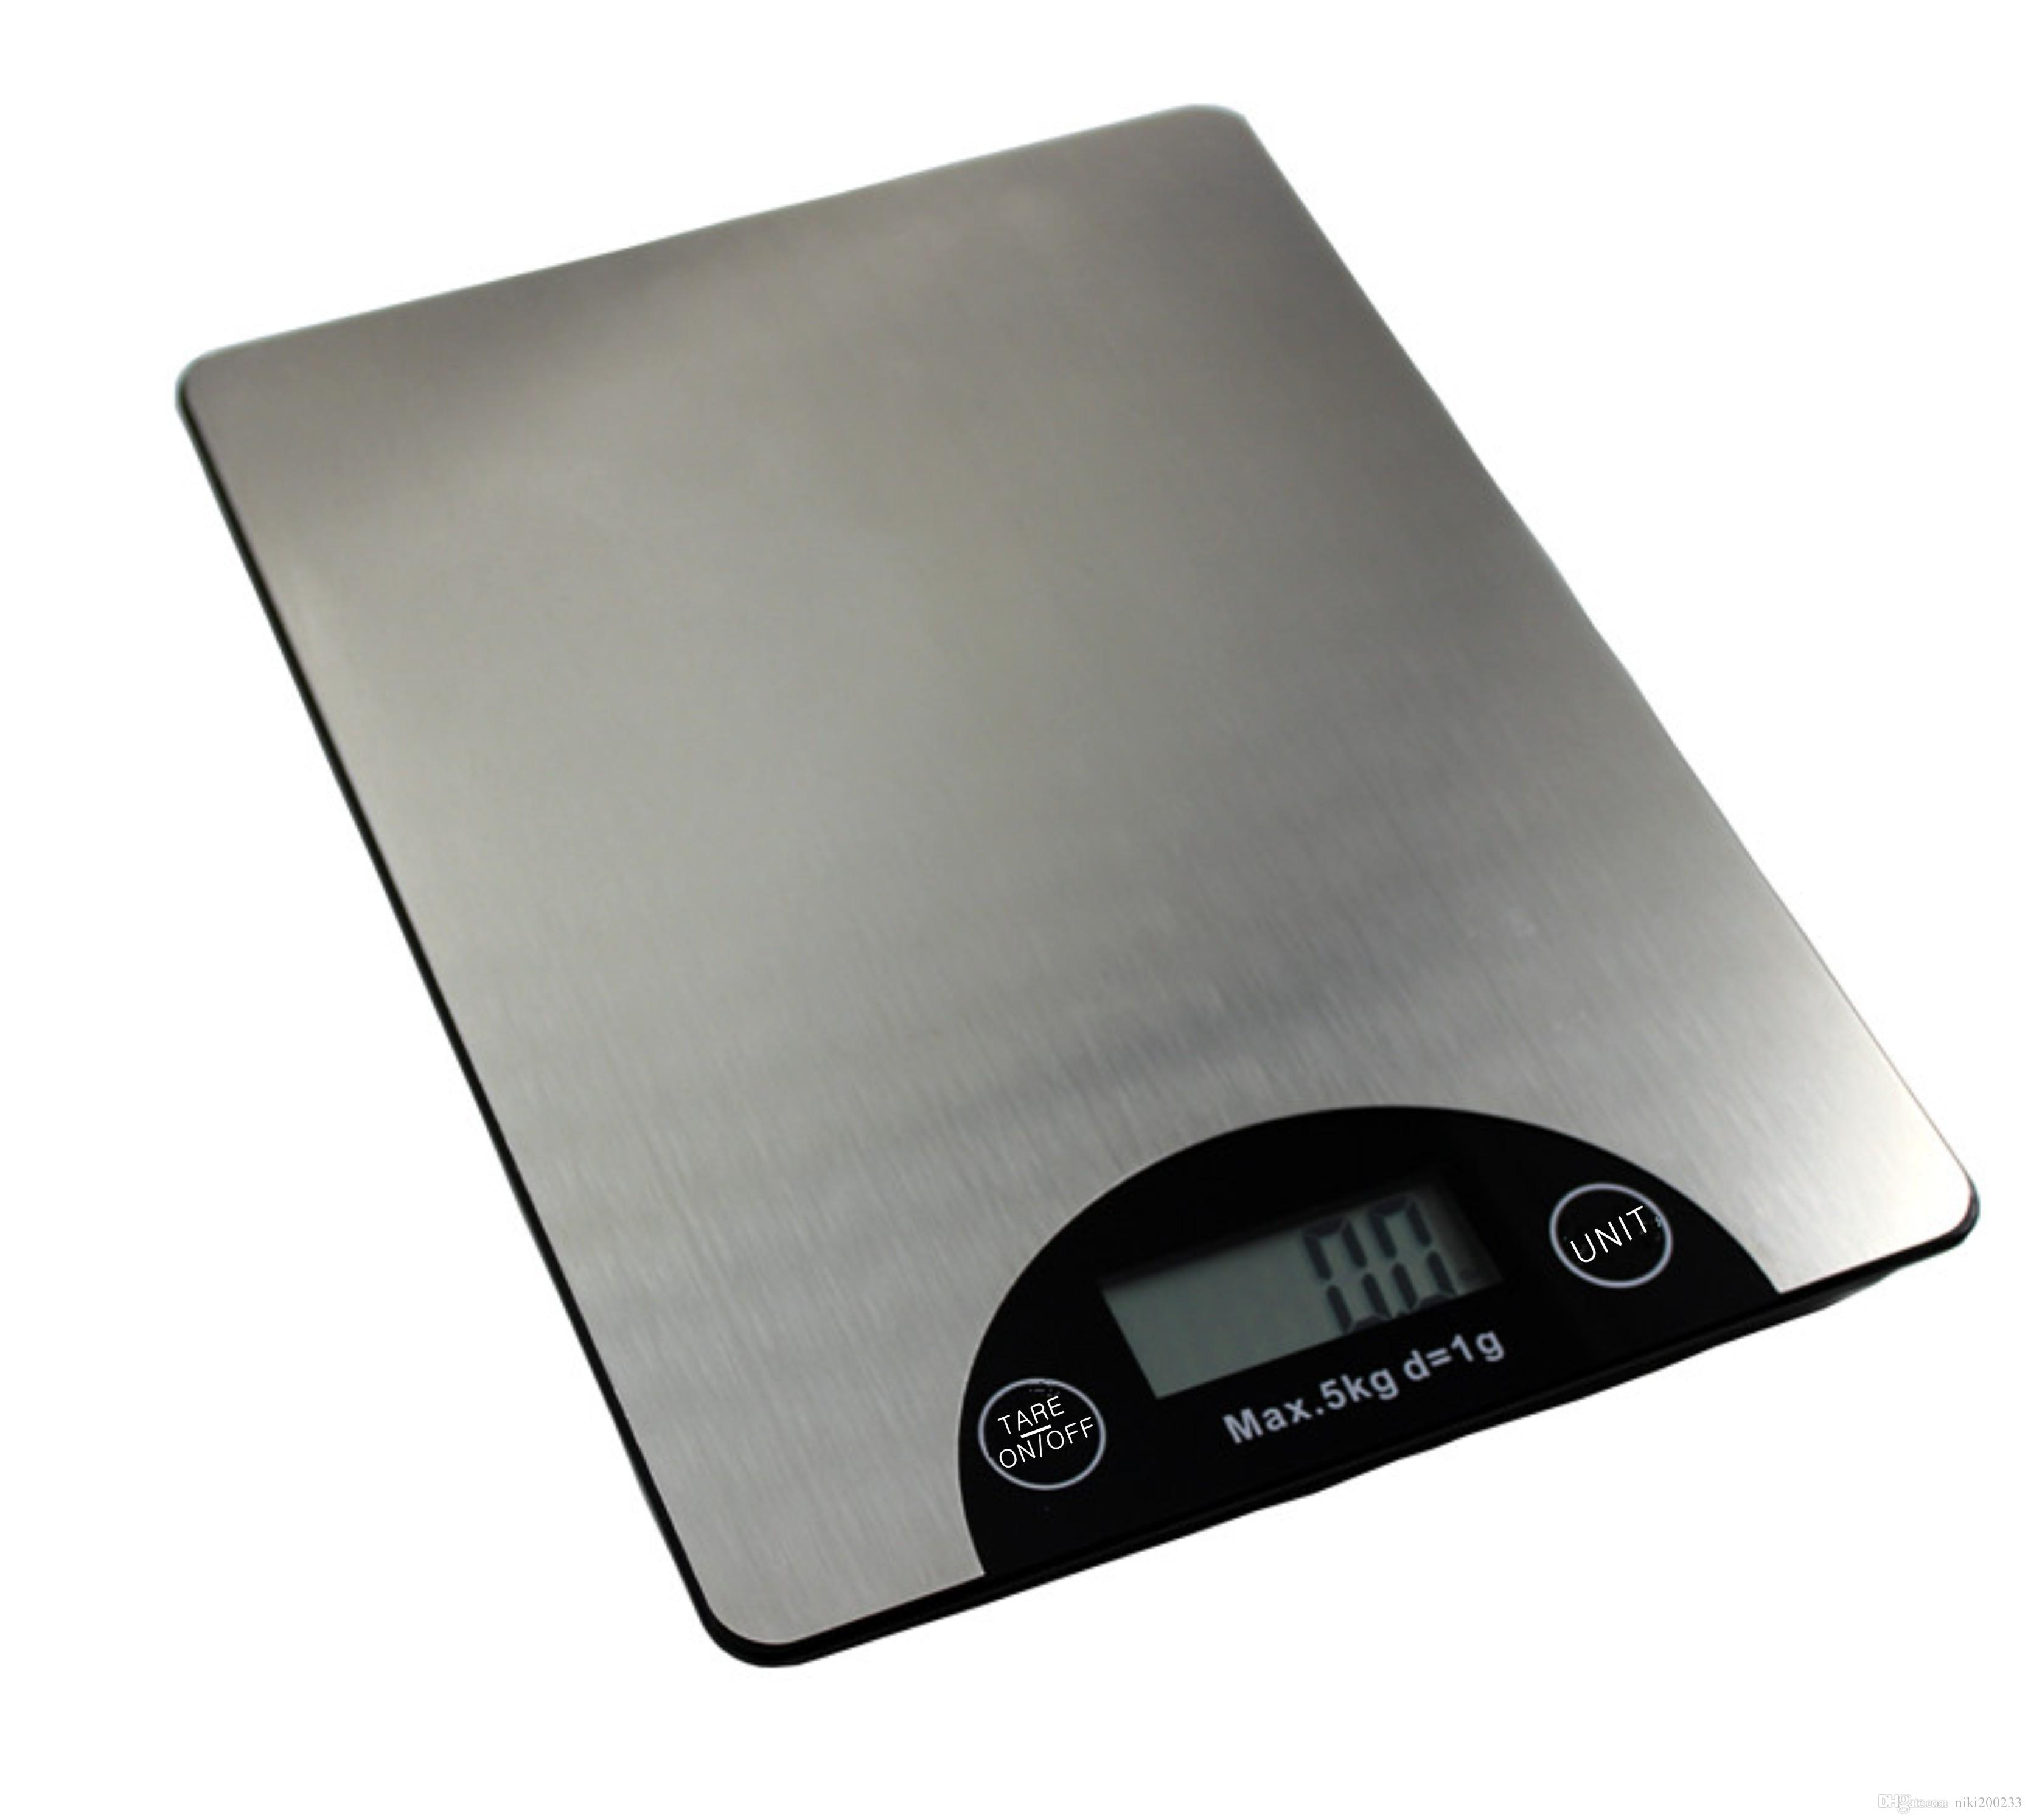 scales ultra slim digital james image kitchen baking andrew